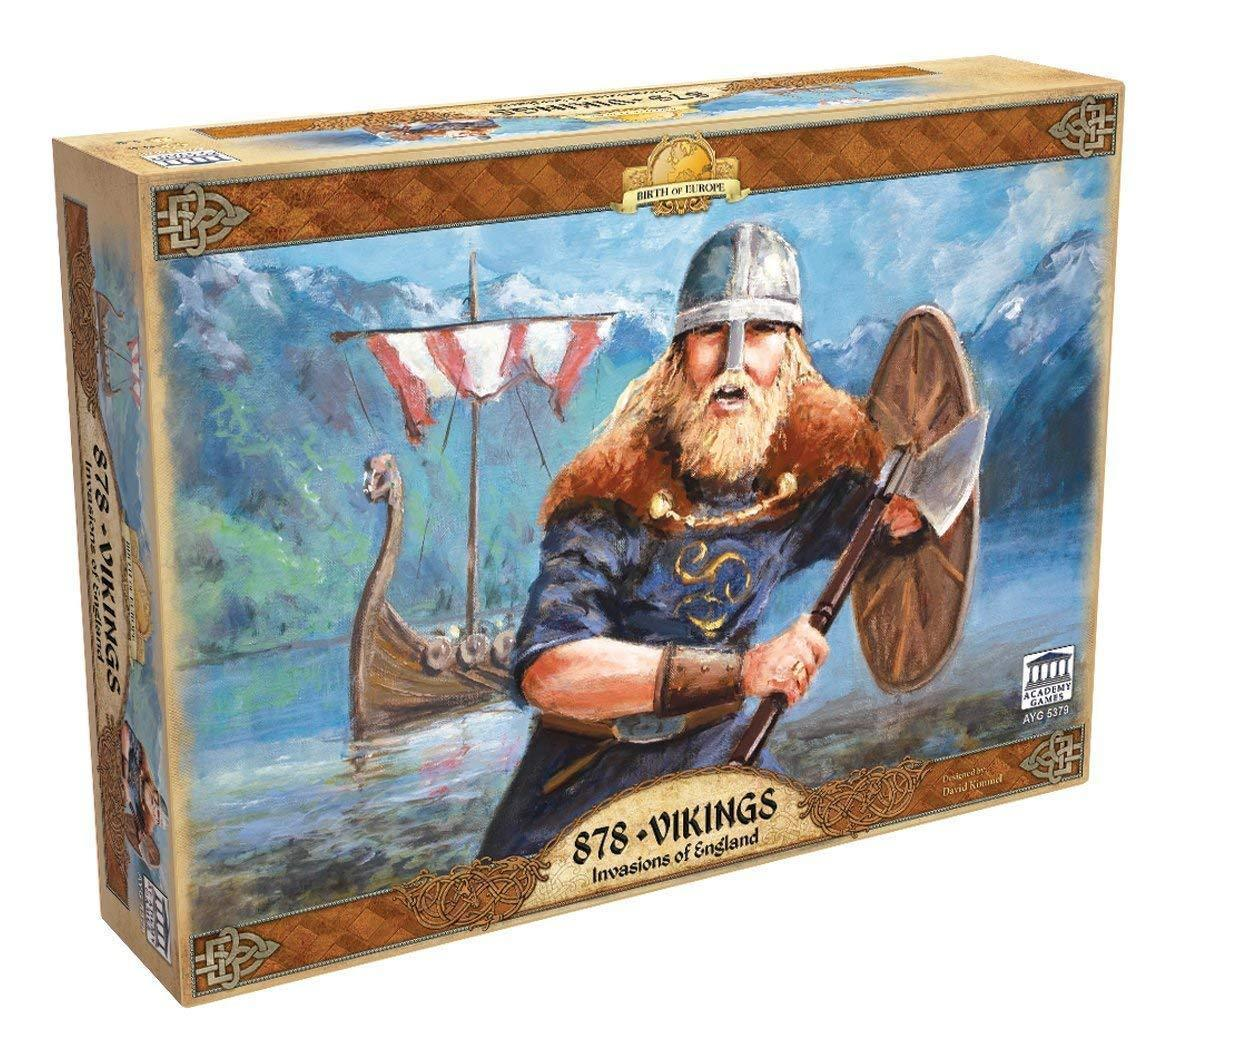 Academy Games 878 Vikings Invasions of England Board Game [New]